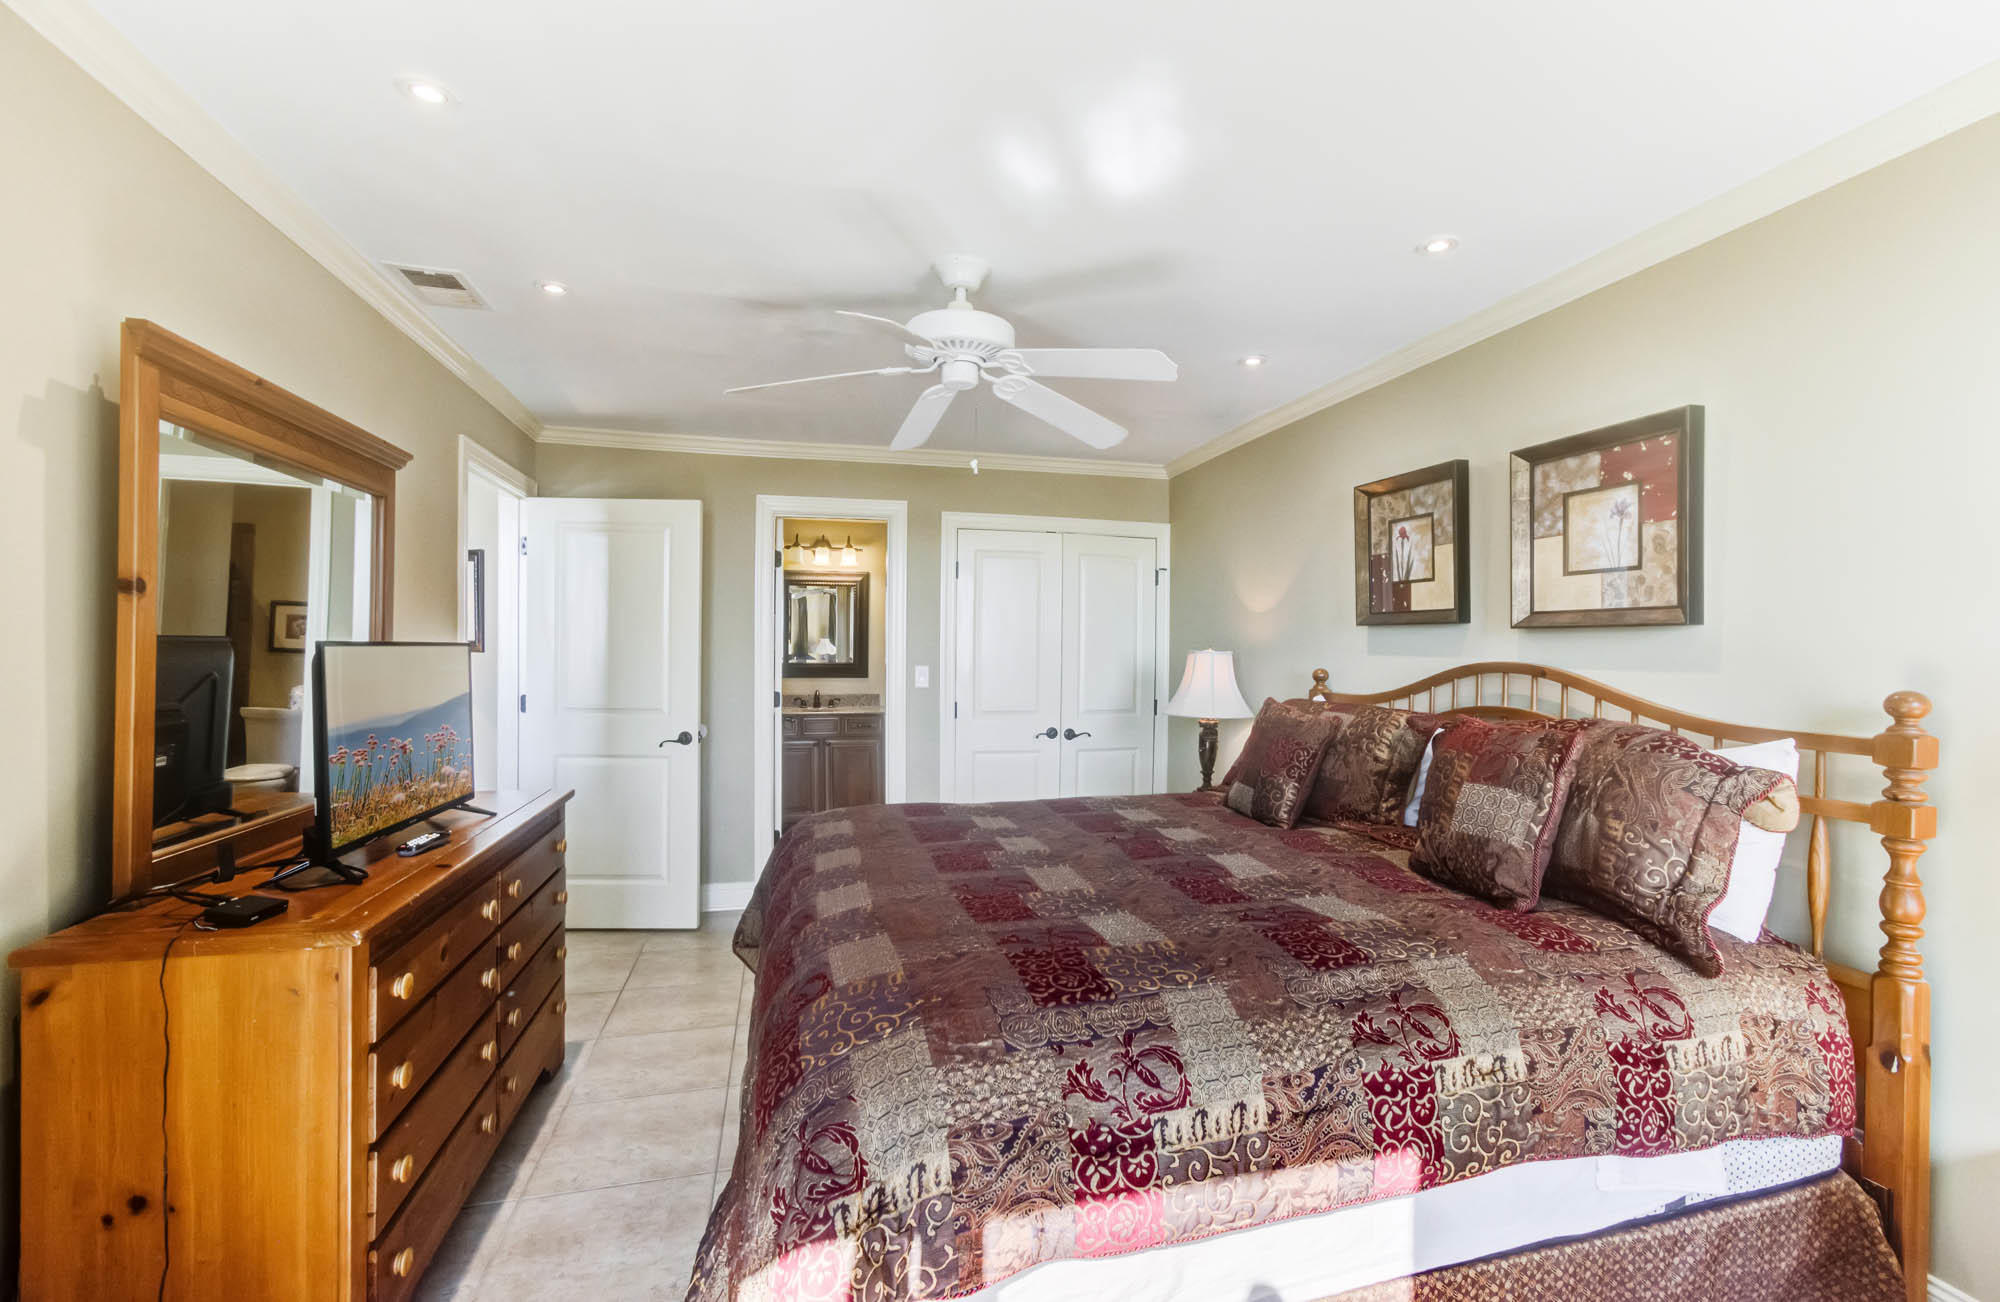 Wild Dunes Homes For Sale - 210 Summerhouse, Isle of Palms, SC - 34